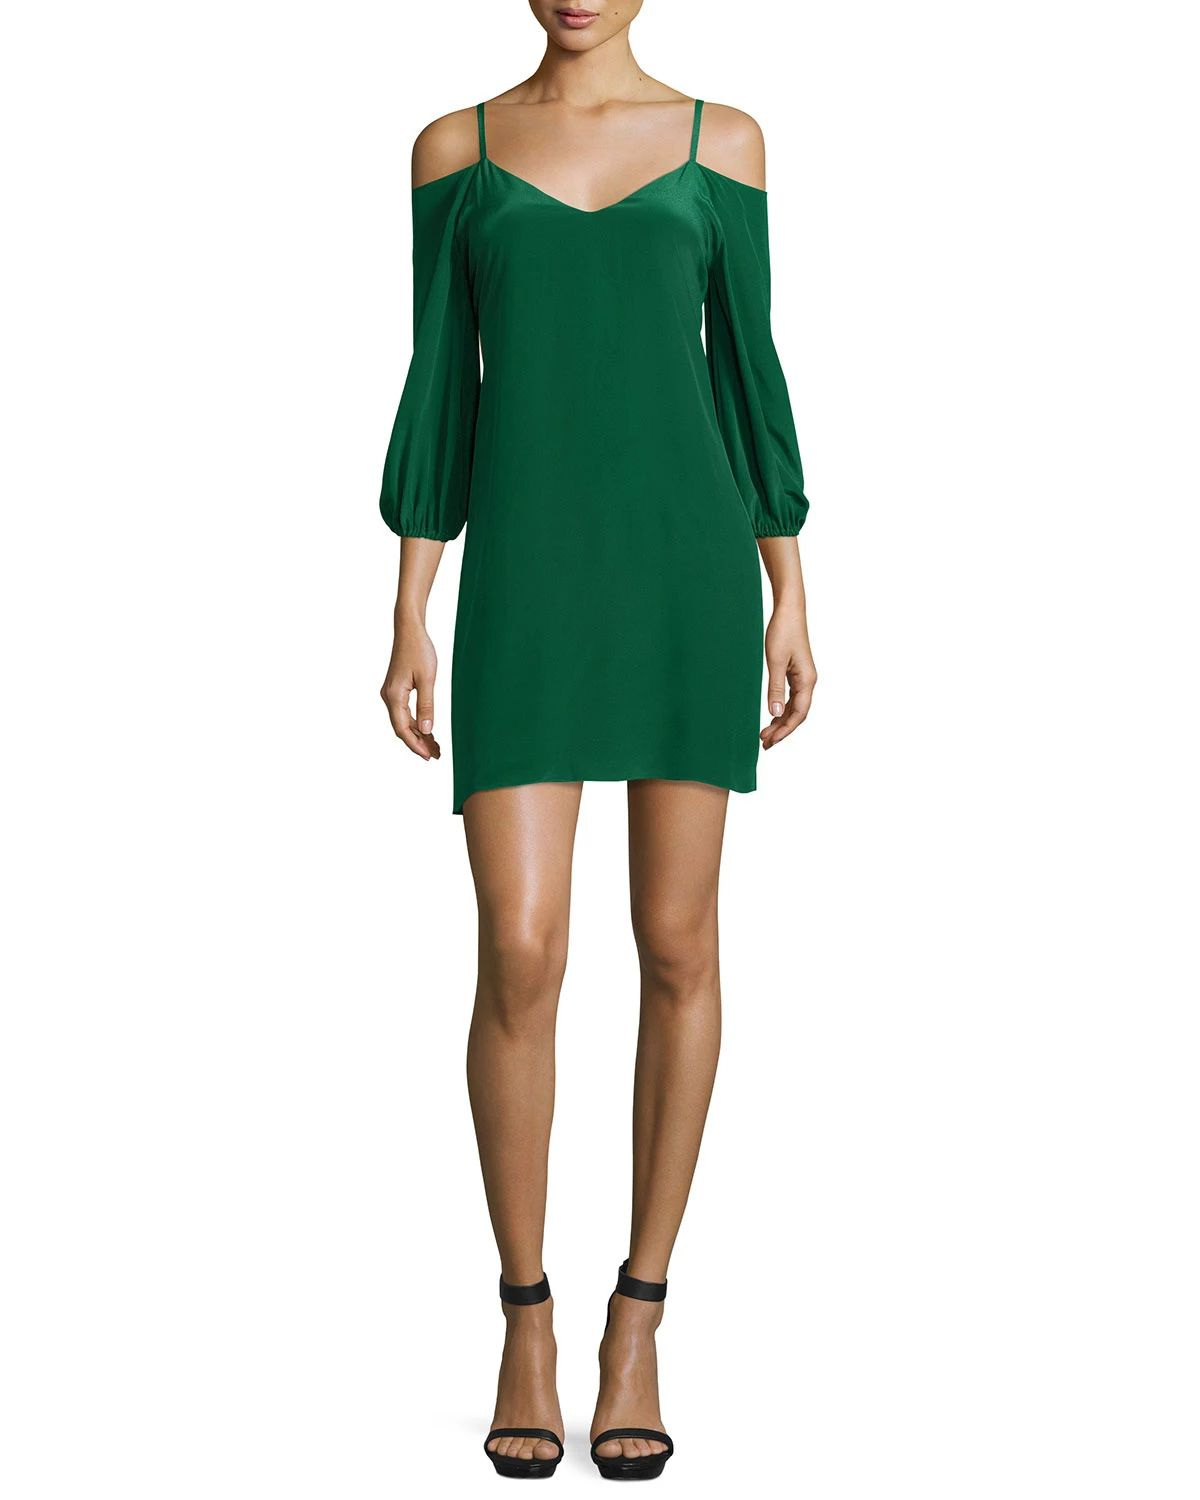 Alice + Olivia, Carli Cold-Shoulder Crepe Mini Dress, $275